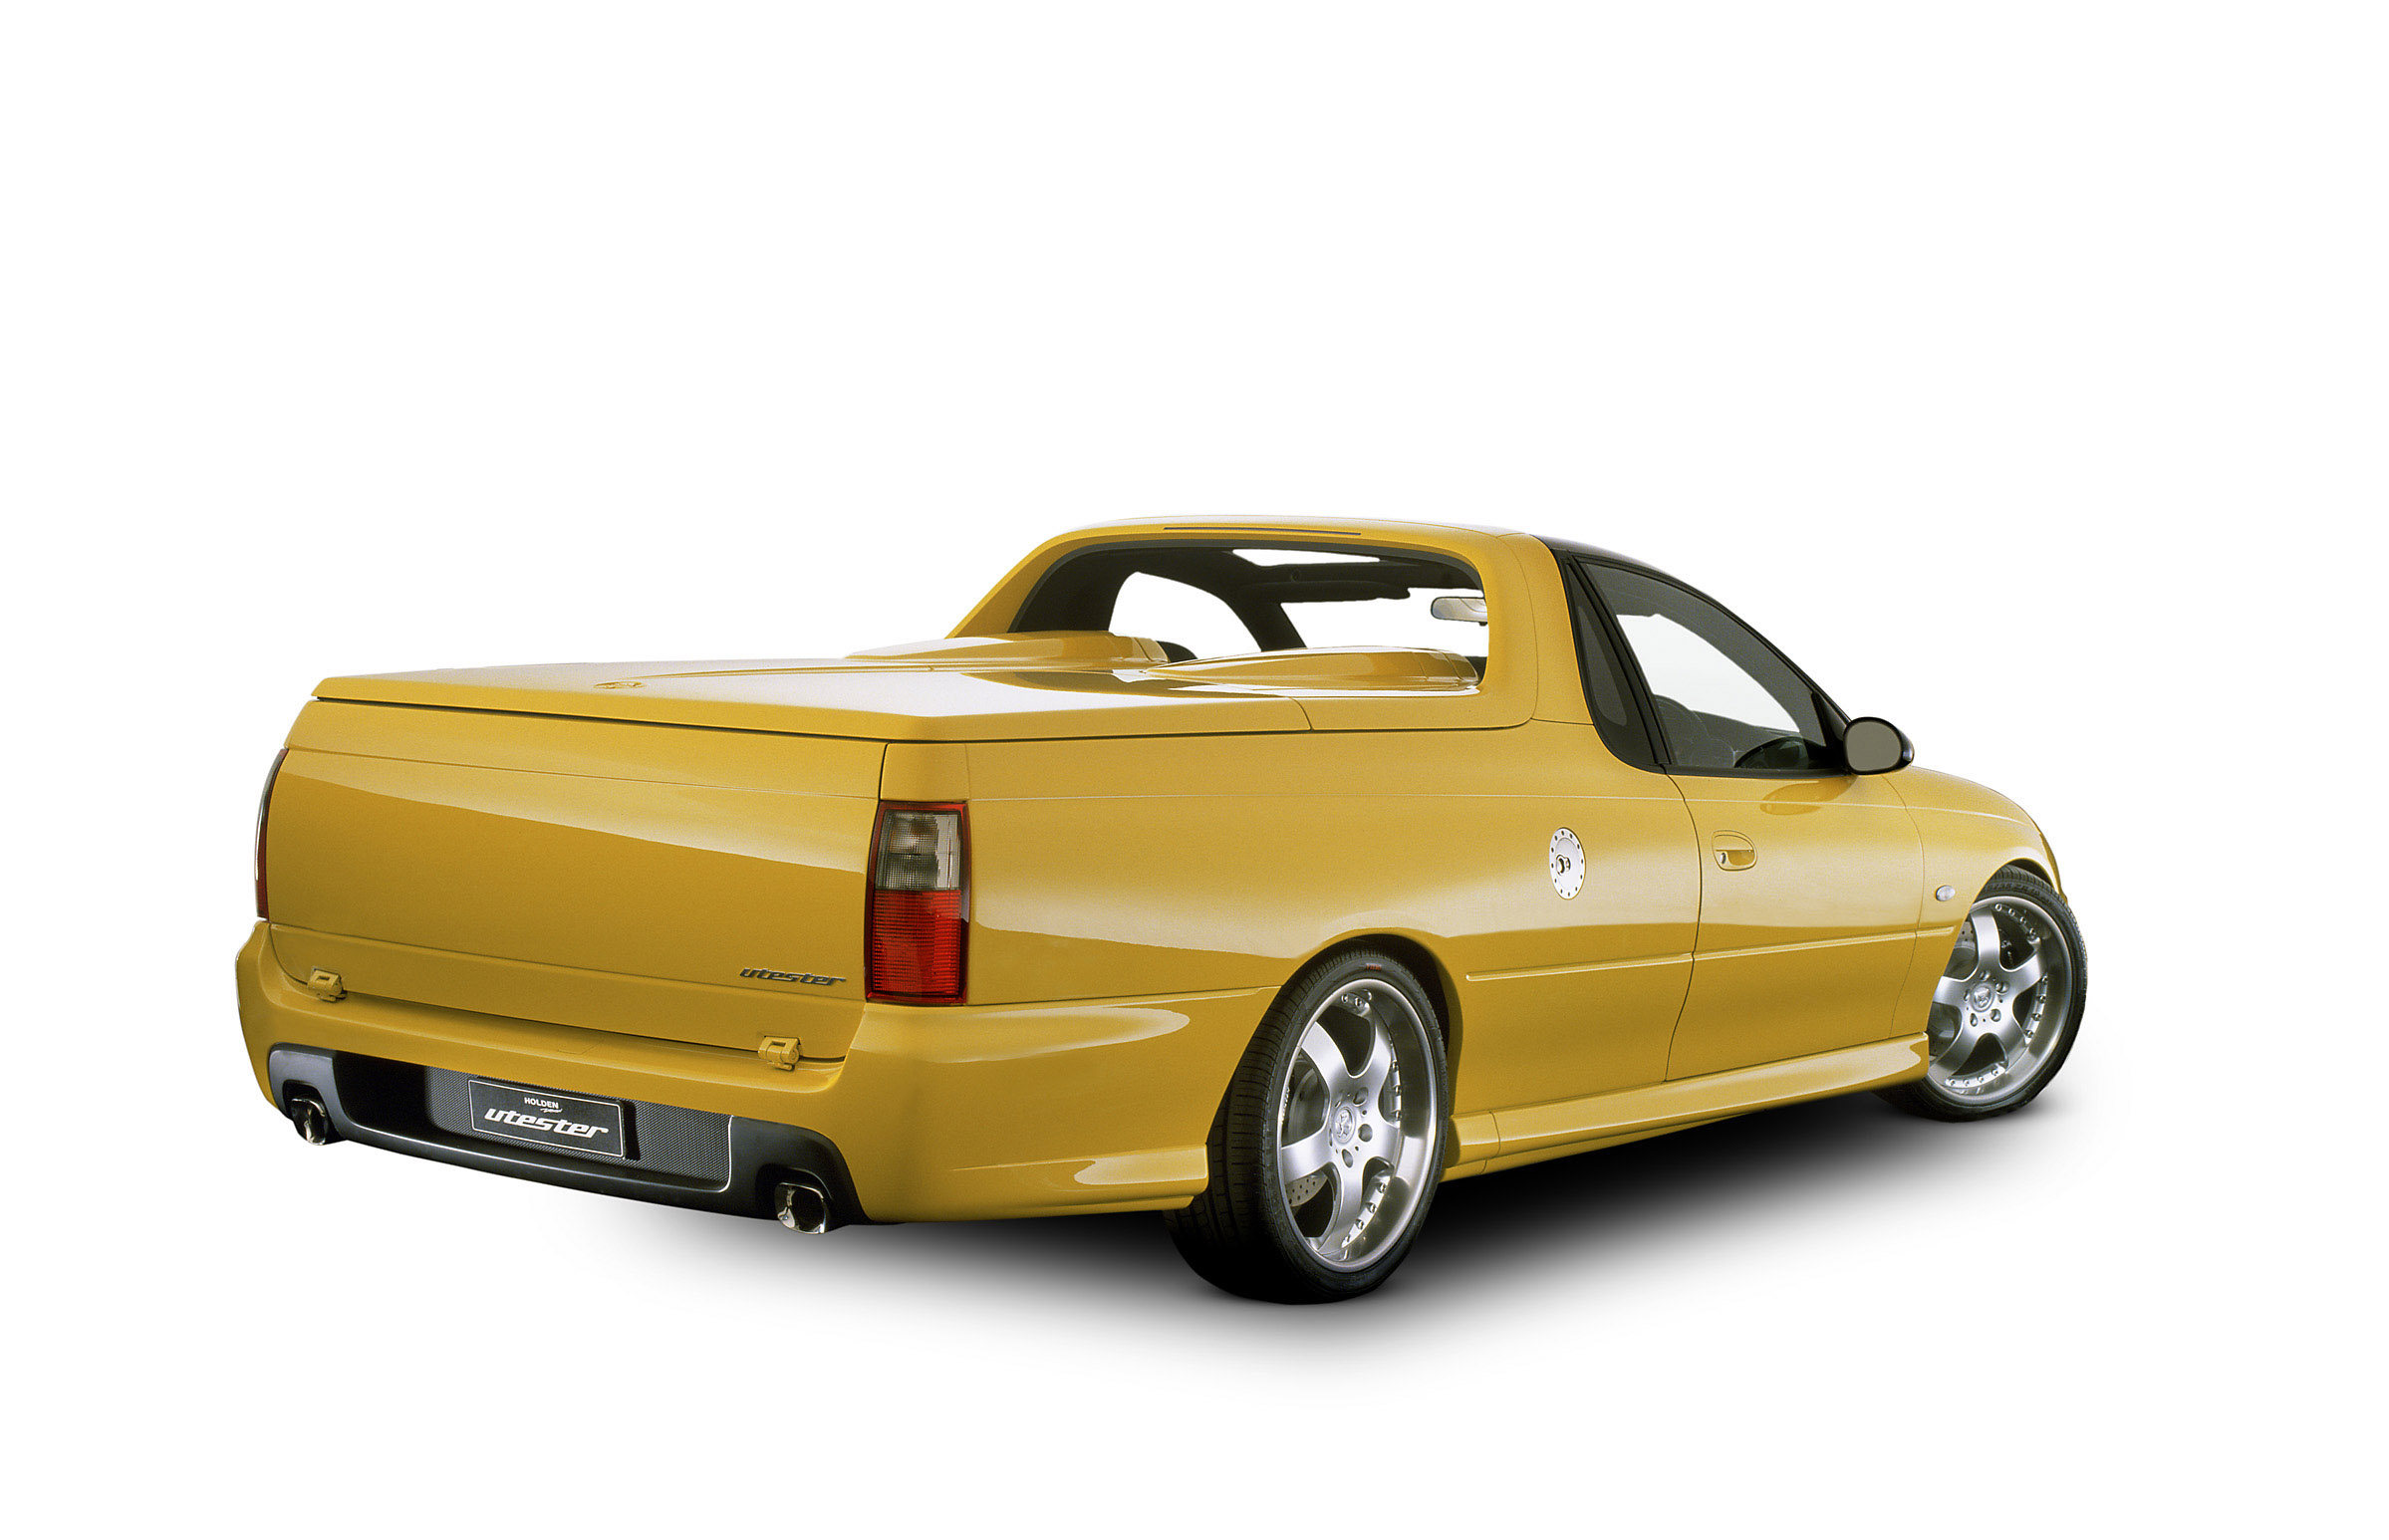 2004 holden sst stepside custom pickup concept images hd cars 2001 holden hsv maloo ute concept images hd cars wallpaper holden pressroom australia photos vanachro images vanachro Choice Image